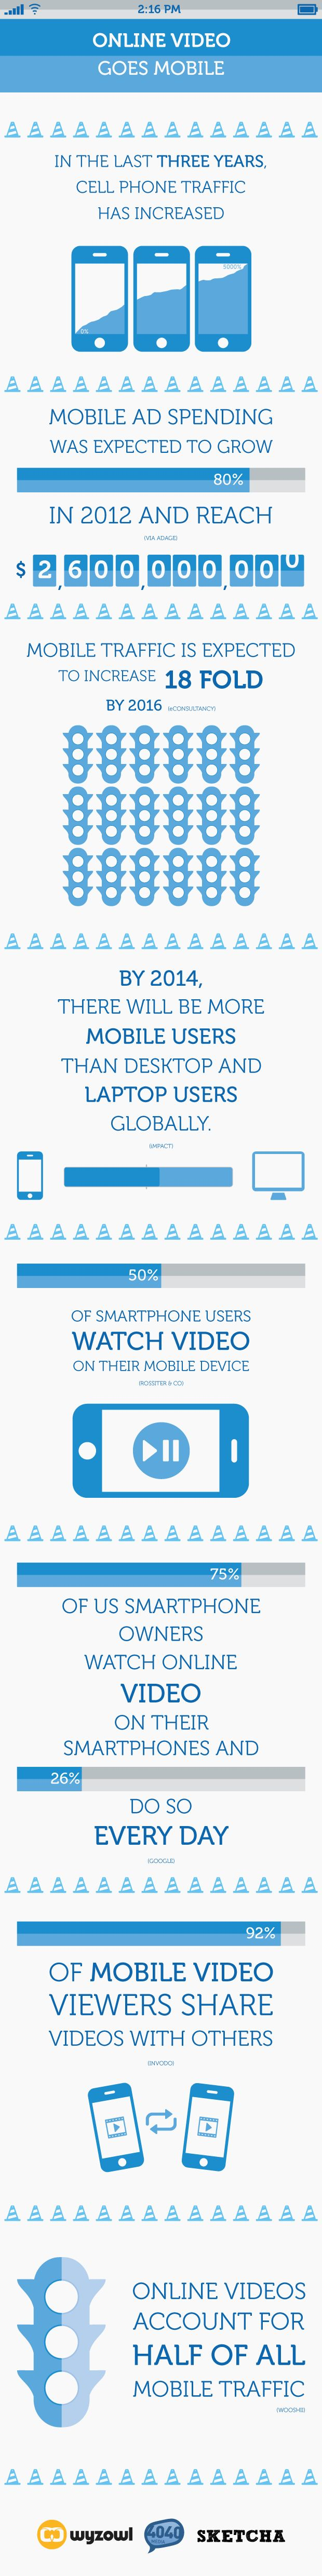 Online video goes mobile #infographic